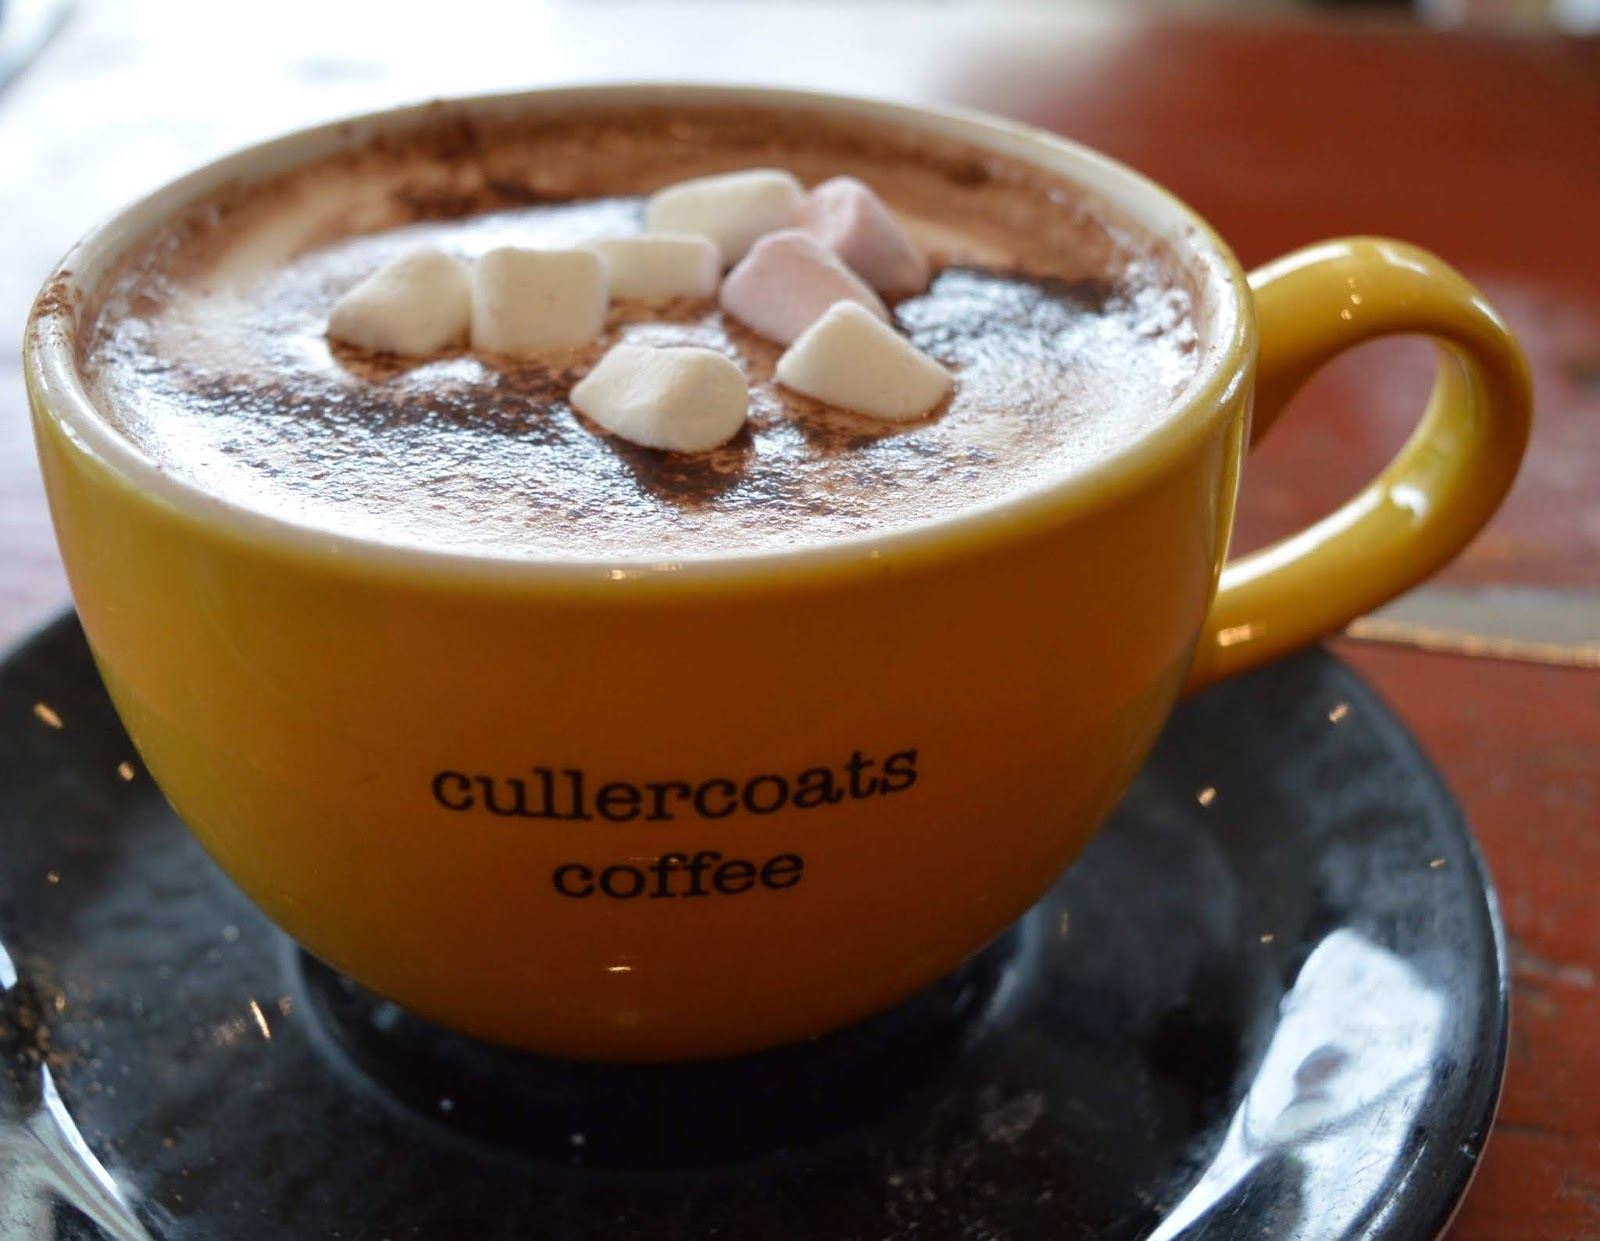 The Seasider Open Top Bus Tour Whitley Bay | Tickets, Prices, Timetables & Where To Visit - cullercoats coffee hot chocolate